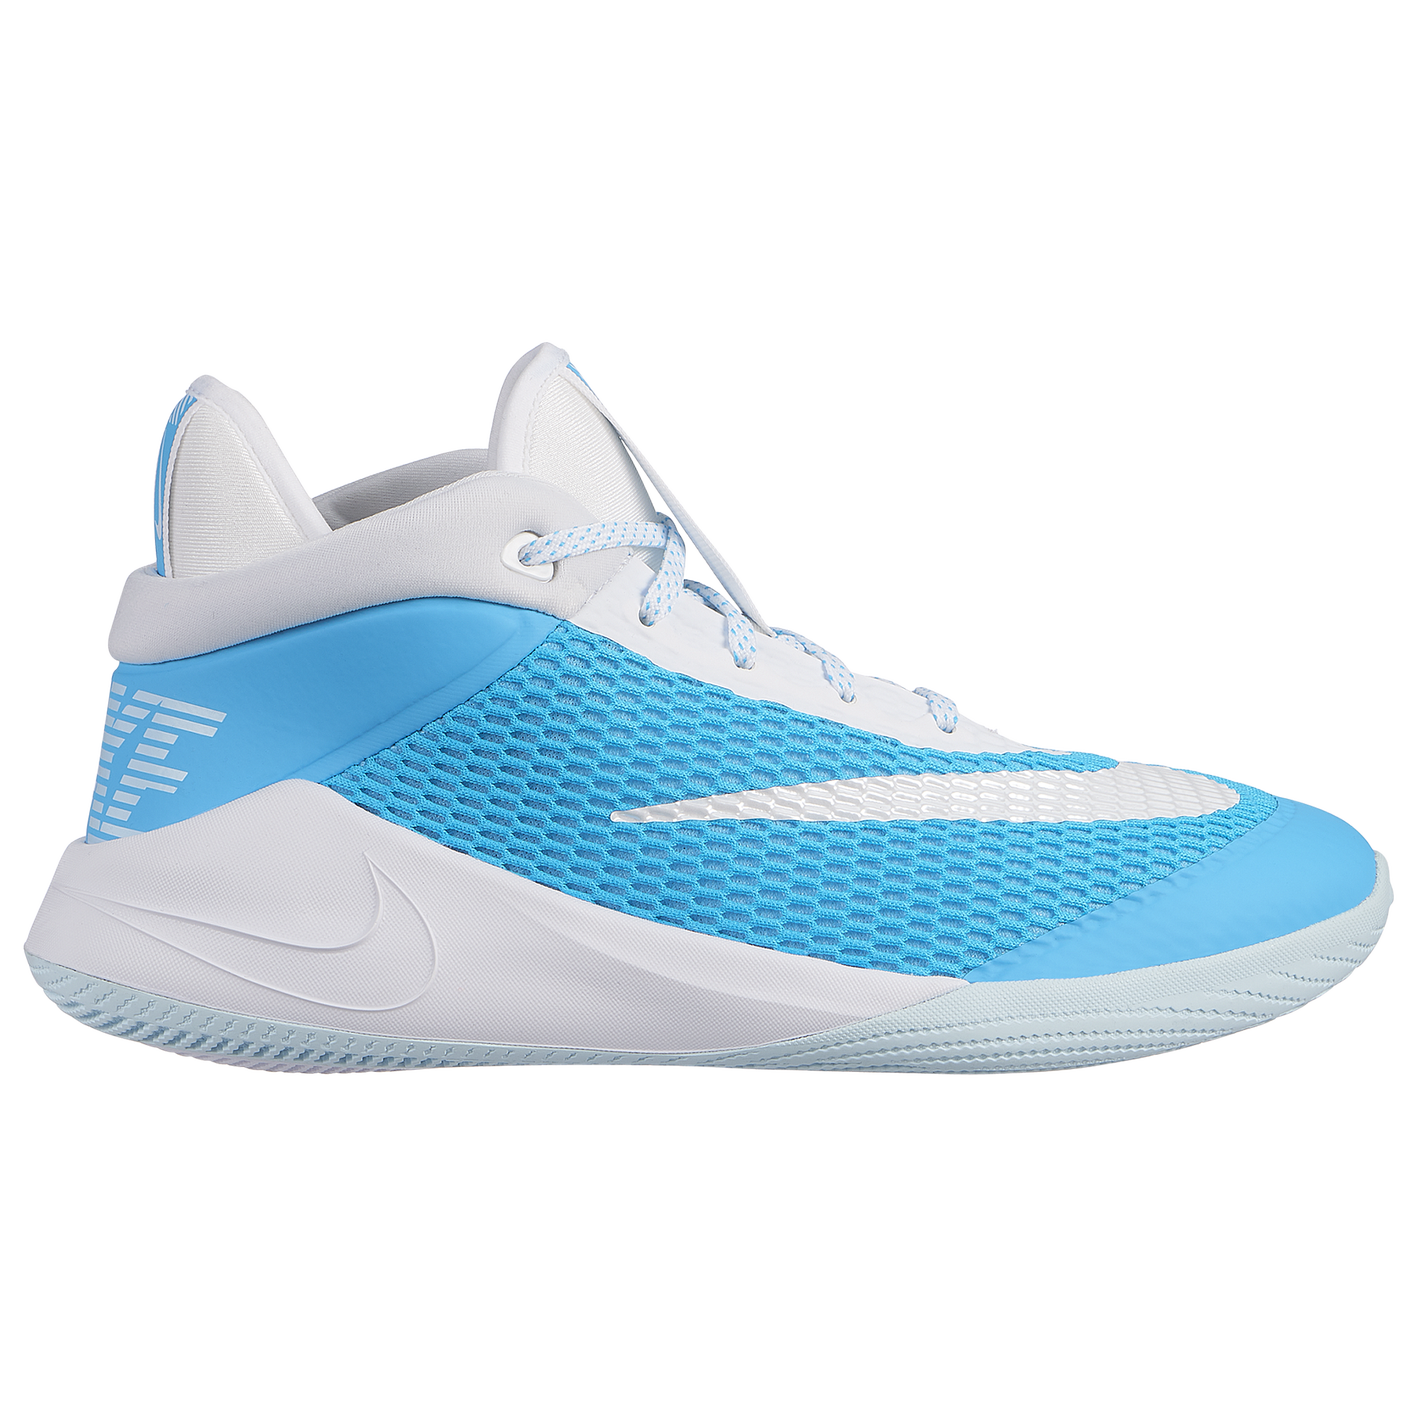 4c1baeec07e9 Nike Future Flight - Boys  Grade School - Basketball - Shoes - White ...